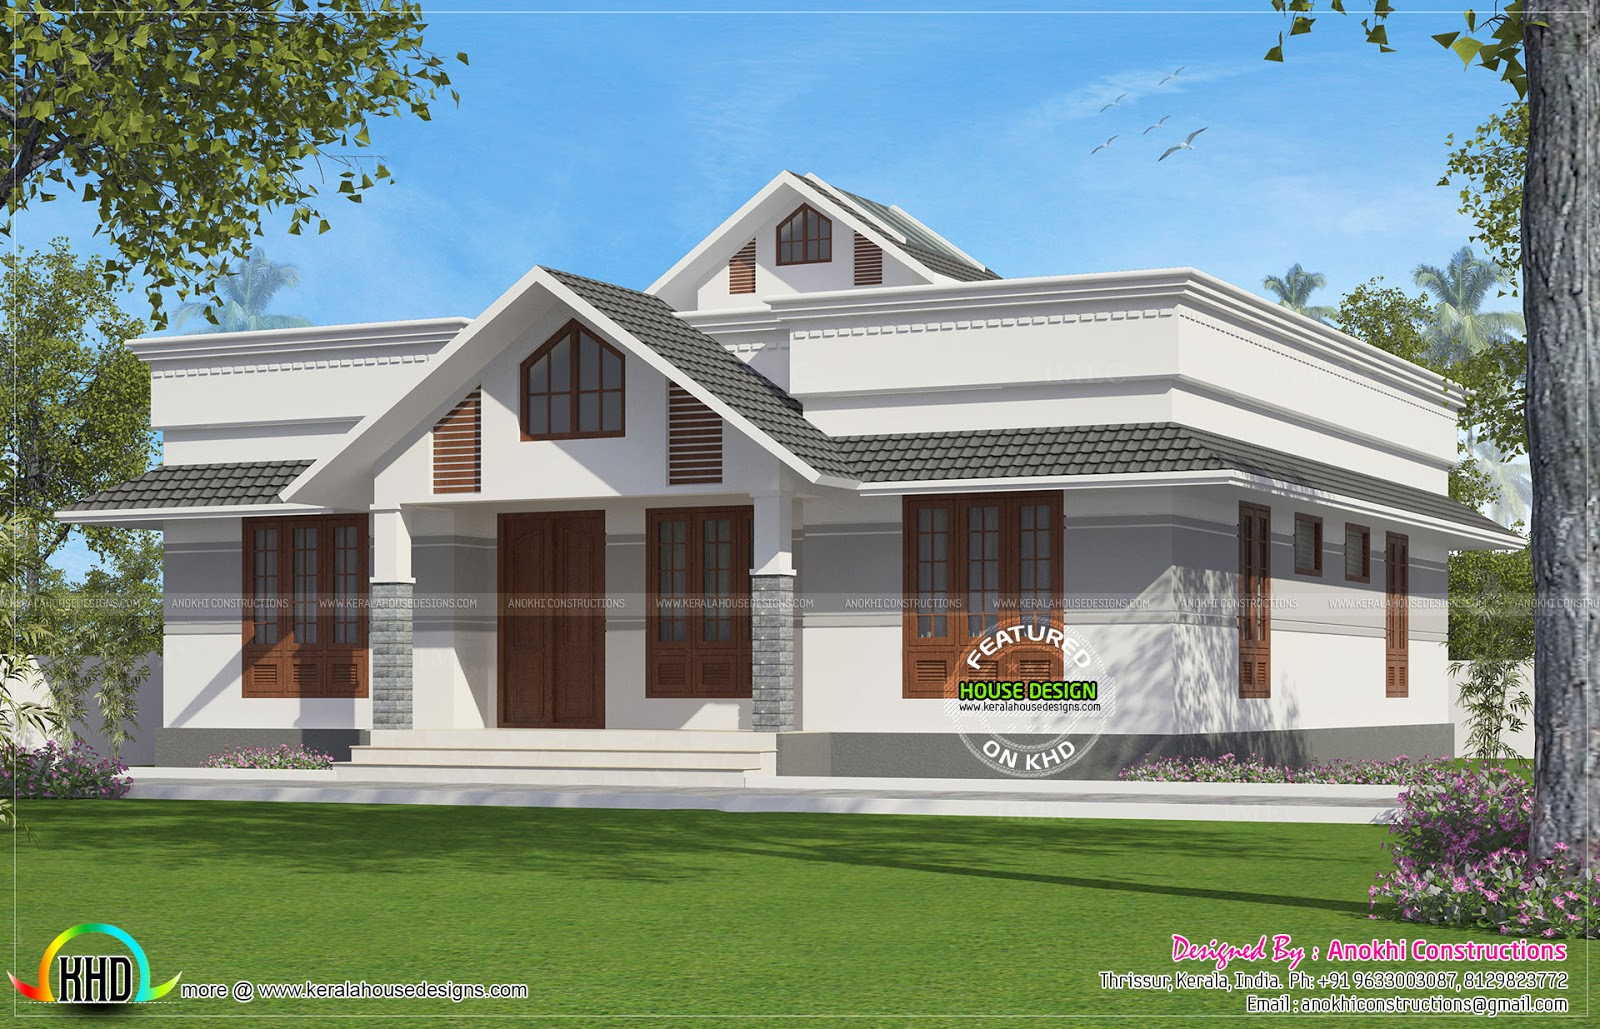 1330 square feet small house plan kerala home design and for House plans in kerala with estimate